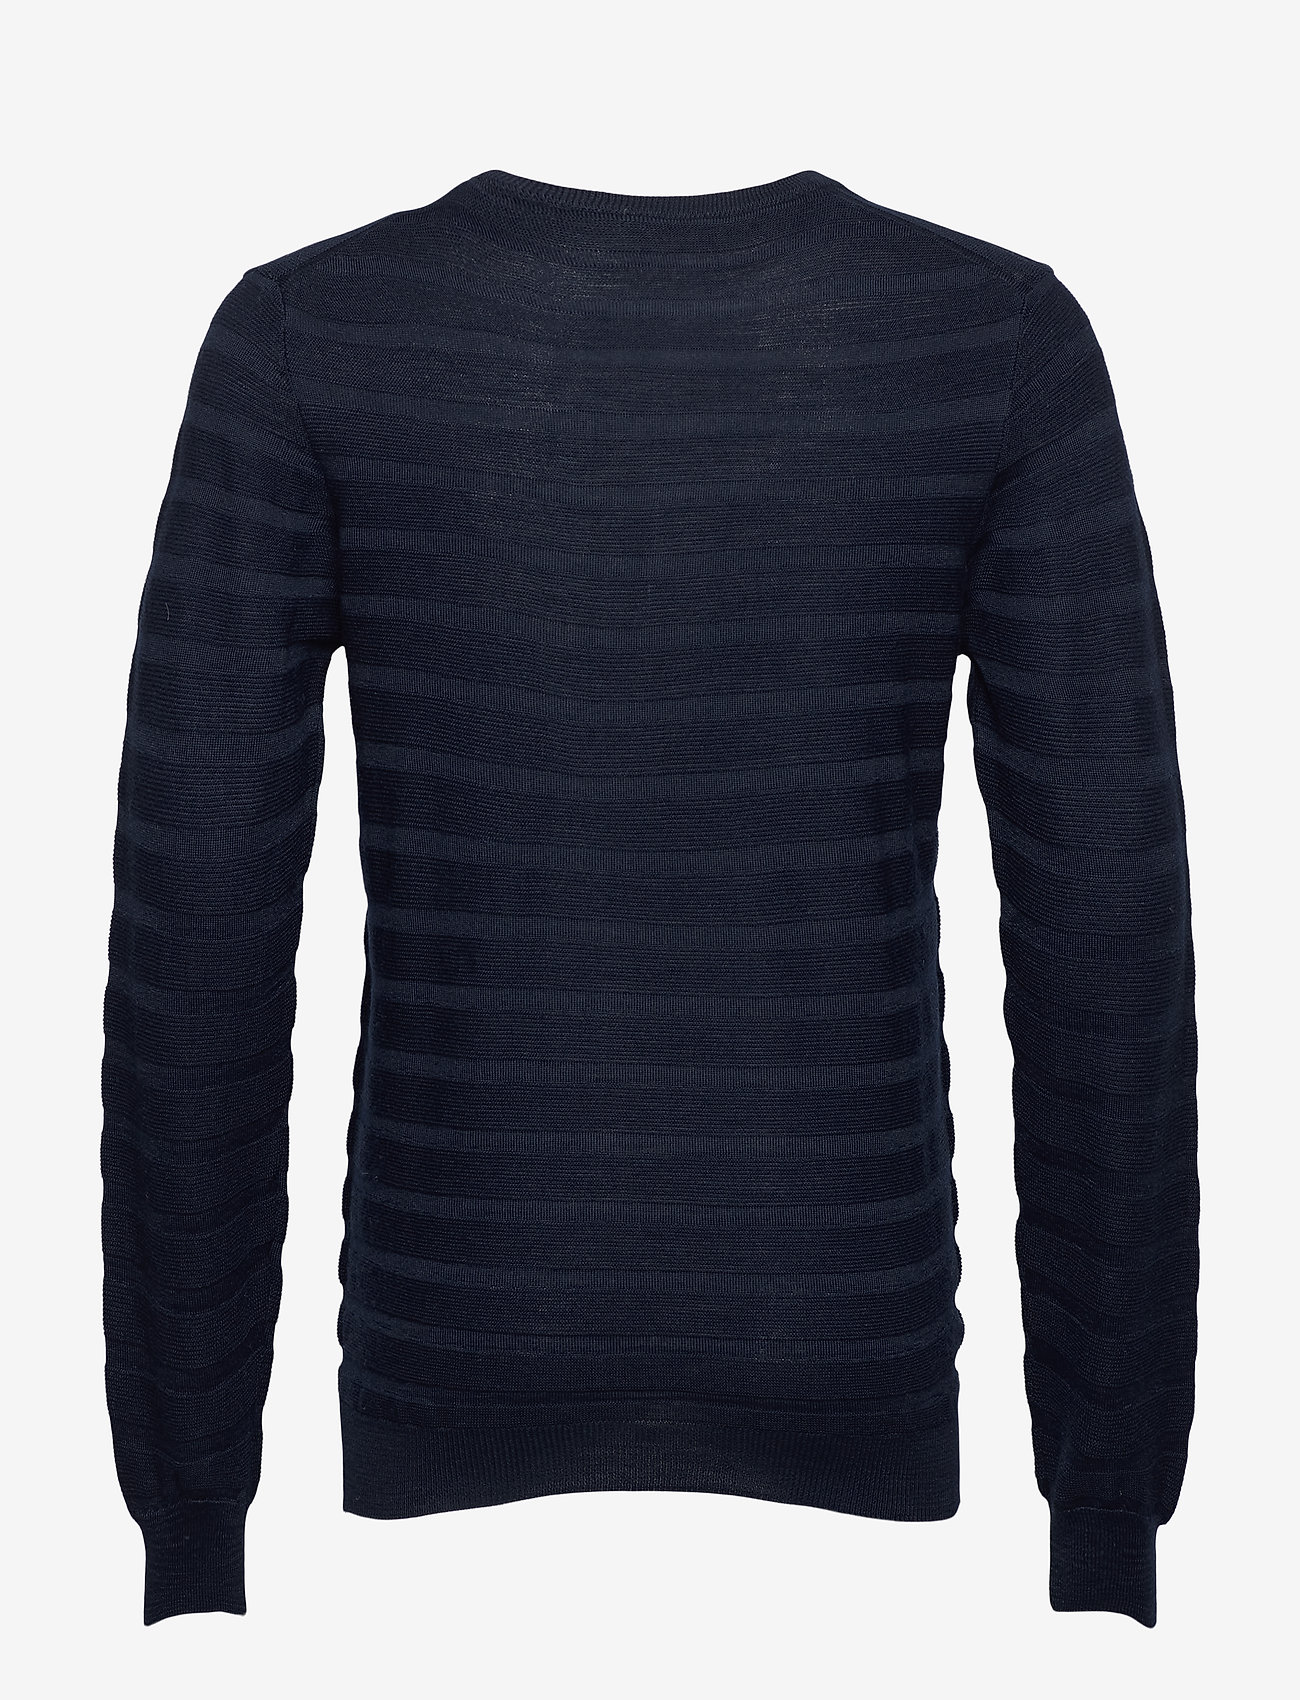 SAND - Merino Stripe - Iq - basic strik - dark blue/navy - 1